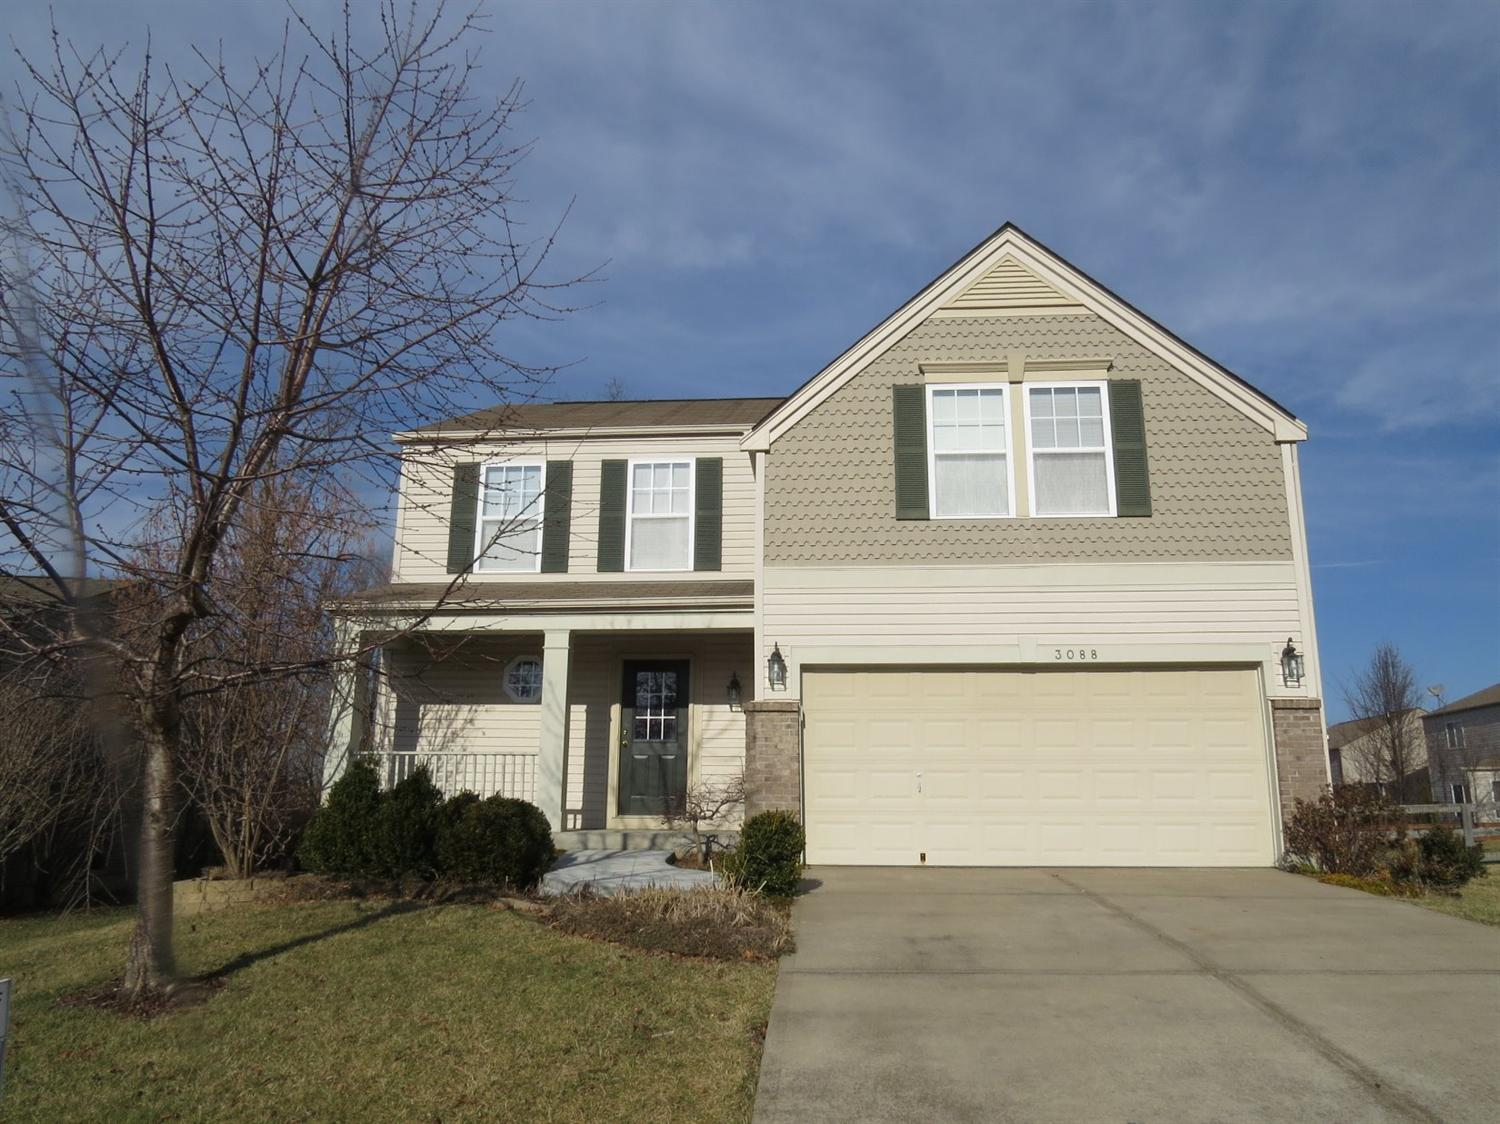 Photo 1 for 3088 Summitrun Dr Independence, KY 41051